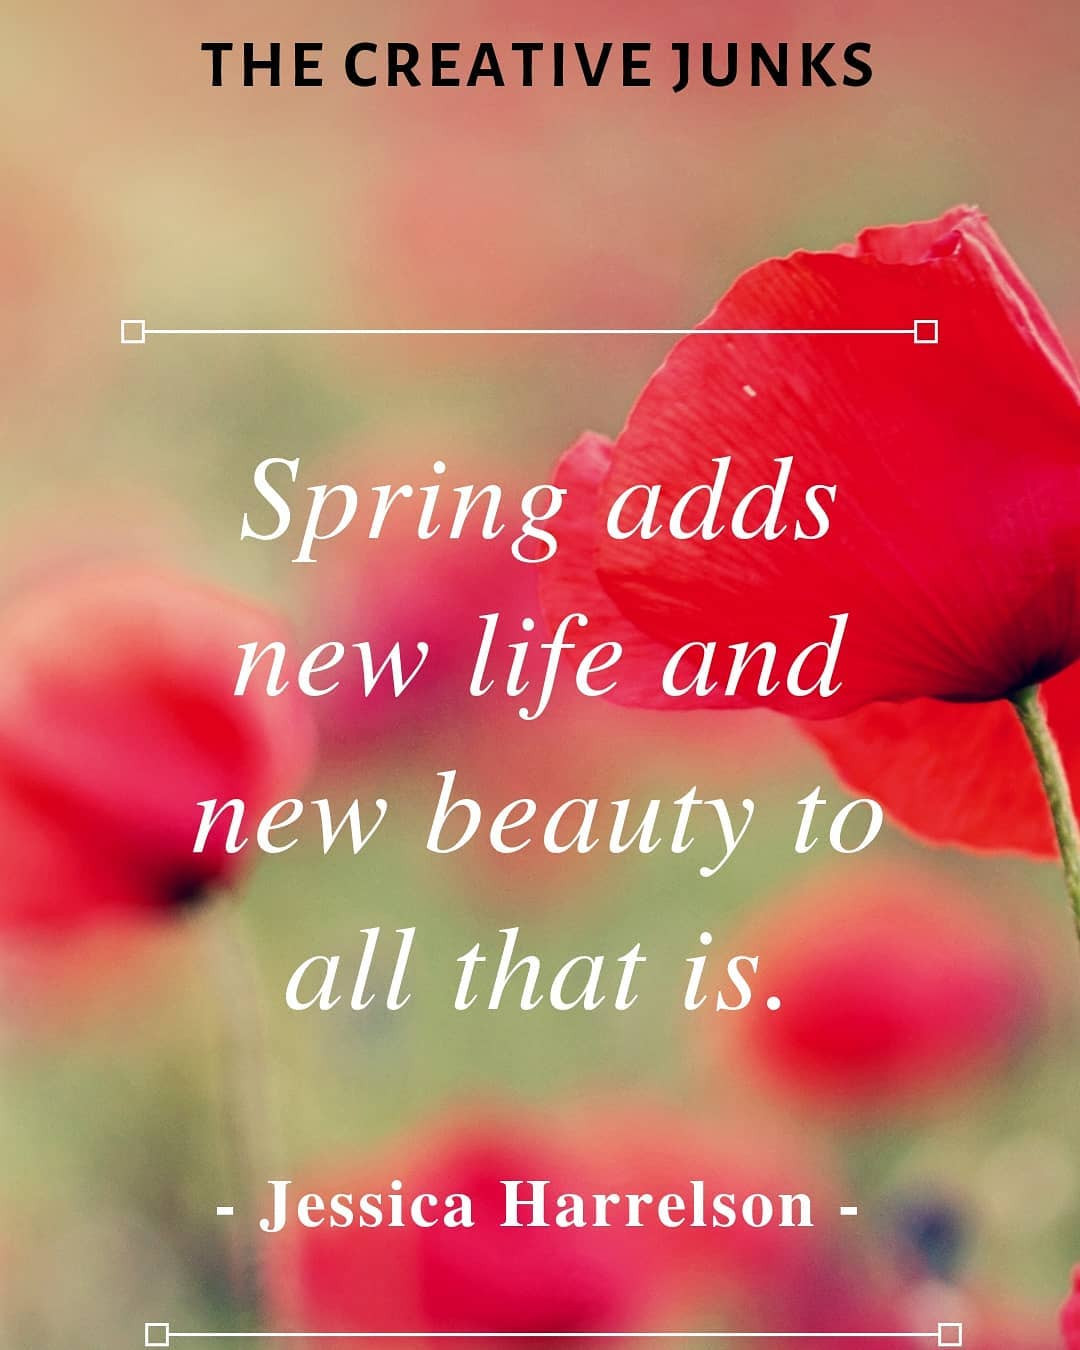 Best Spring Quotes to Welcome the Season of Renewal,hello spring quotes,funny spring quotes,happy spring quotes,spring flower quotes